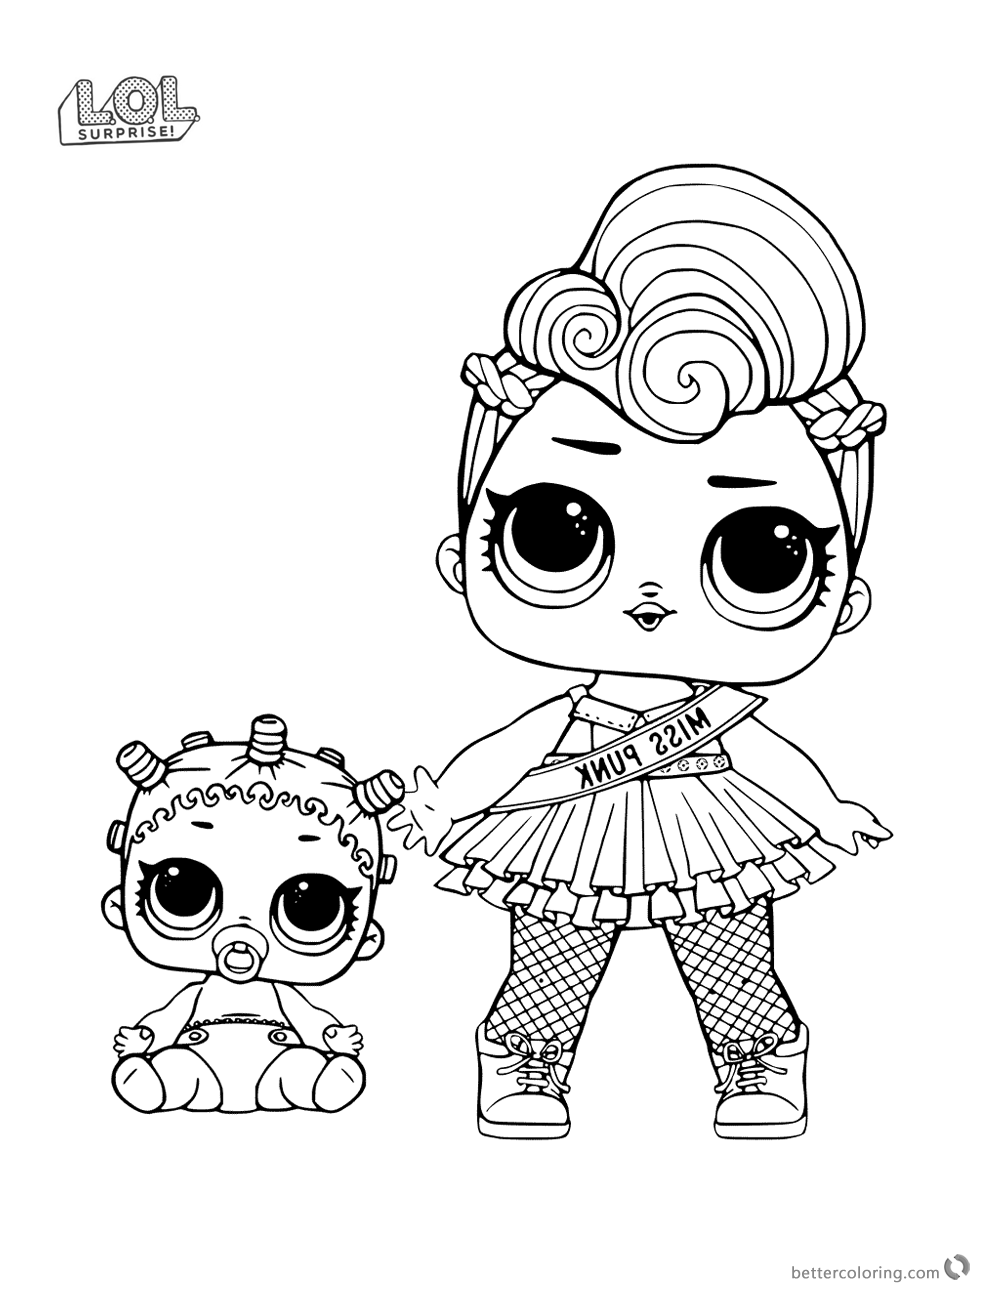 Miss Punk LOL Surprise Doll Coloring Pages - Free Printable Coloring ...